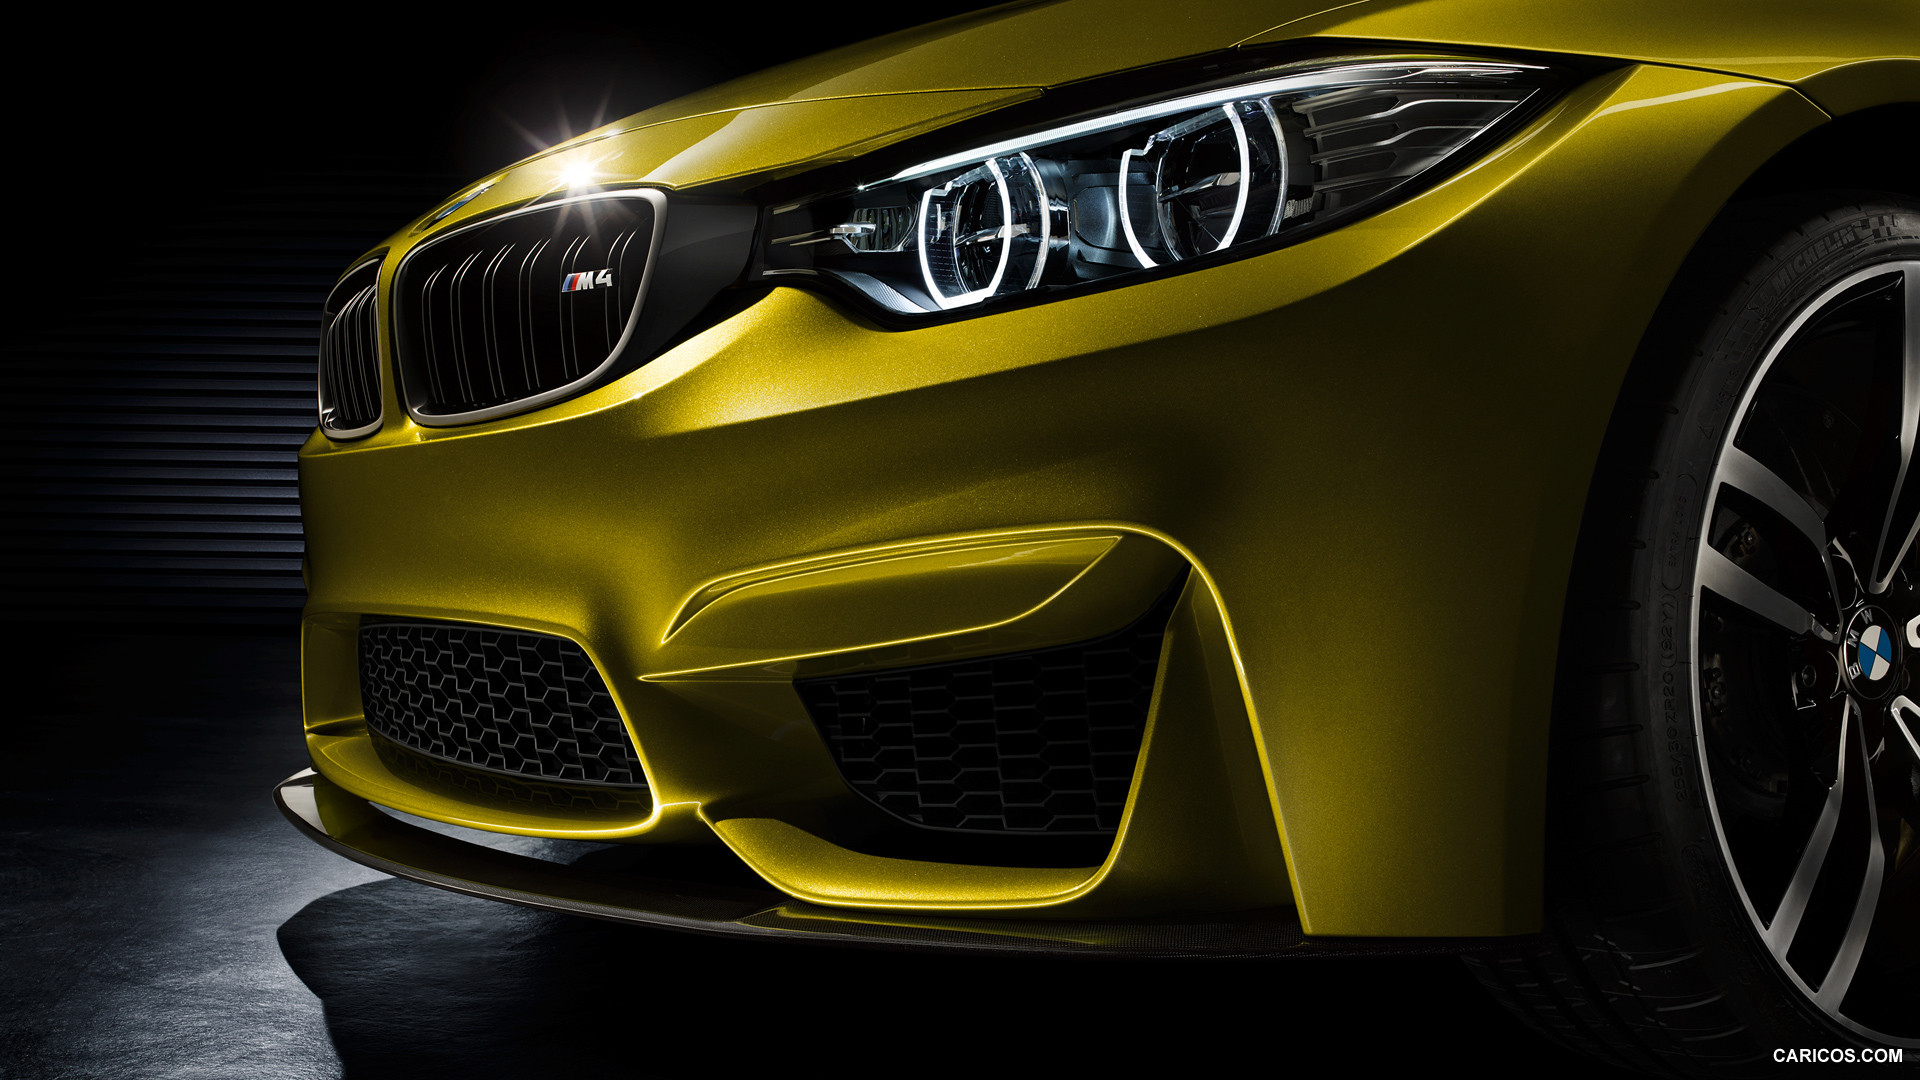 Bmw M4 Hd Wallpapers 1080p Free Wallpaper And Backgrounds Bmw M4 Coupe Wallpaper Full Hd 1920x1080 Download Hd Wallpaper Wallpapertip